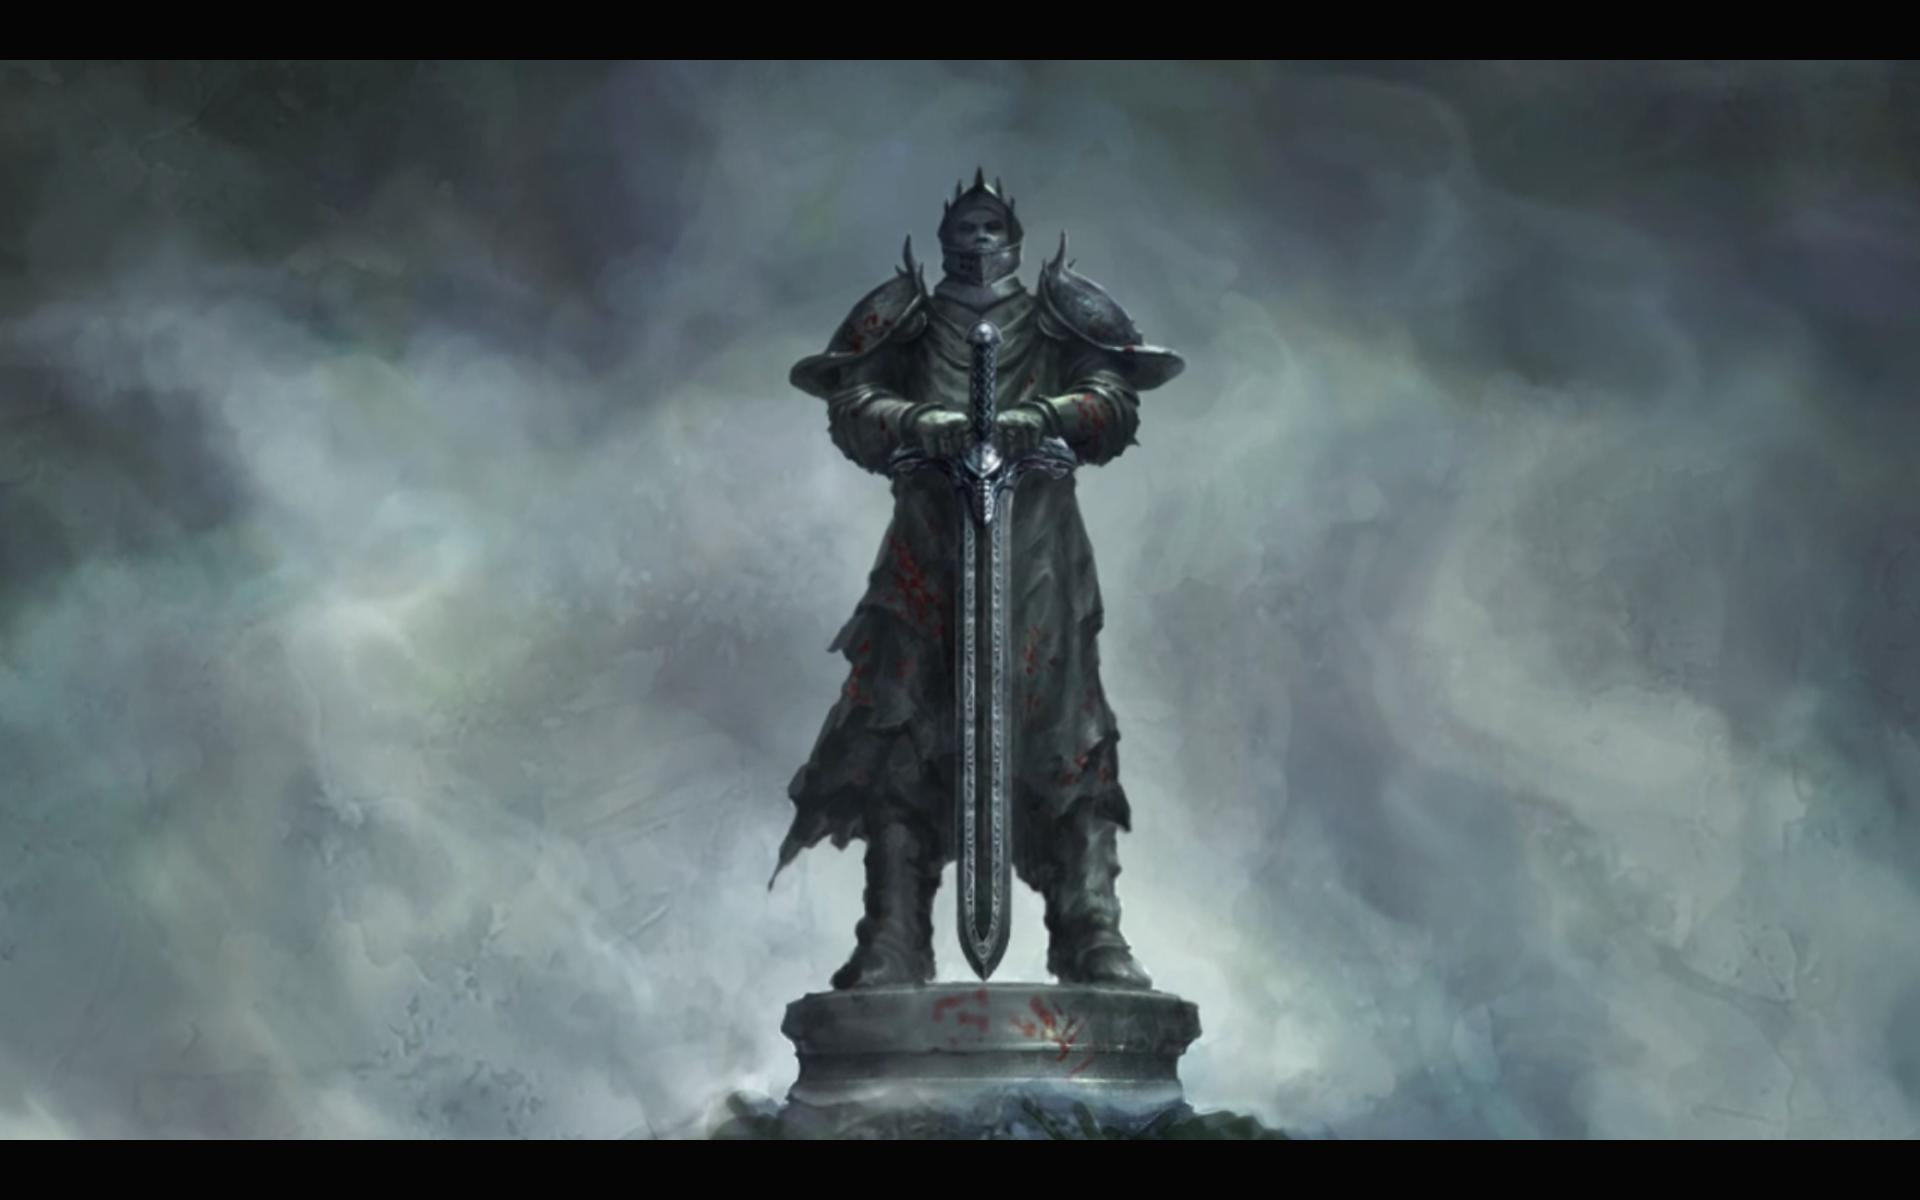 Knight Sword Wallpapers Top Free Knight Sword Backgrounds